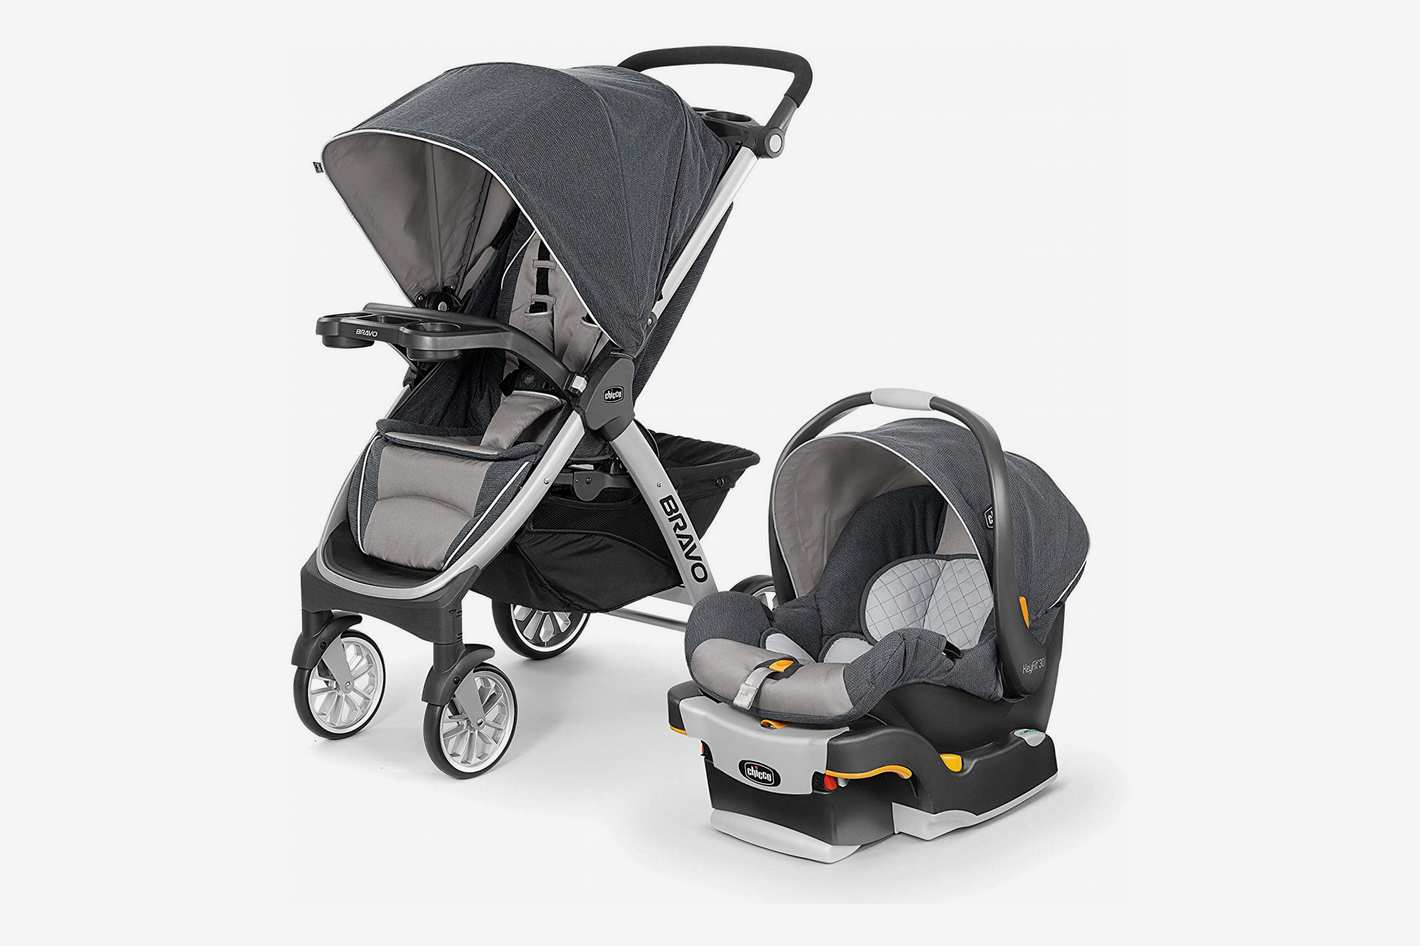 Chicco Bravo Trio Travel System With Full-Size Stroller